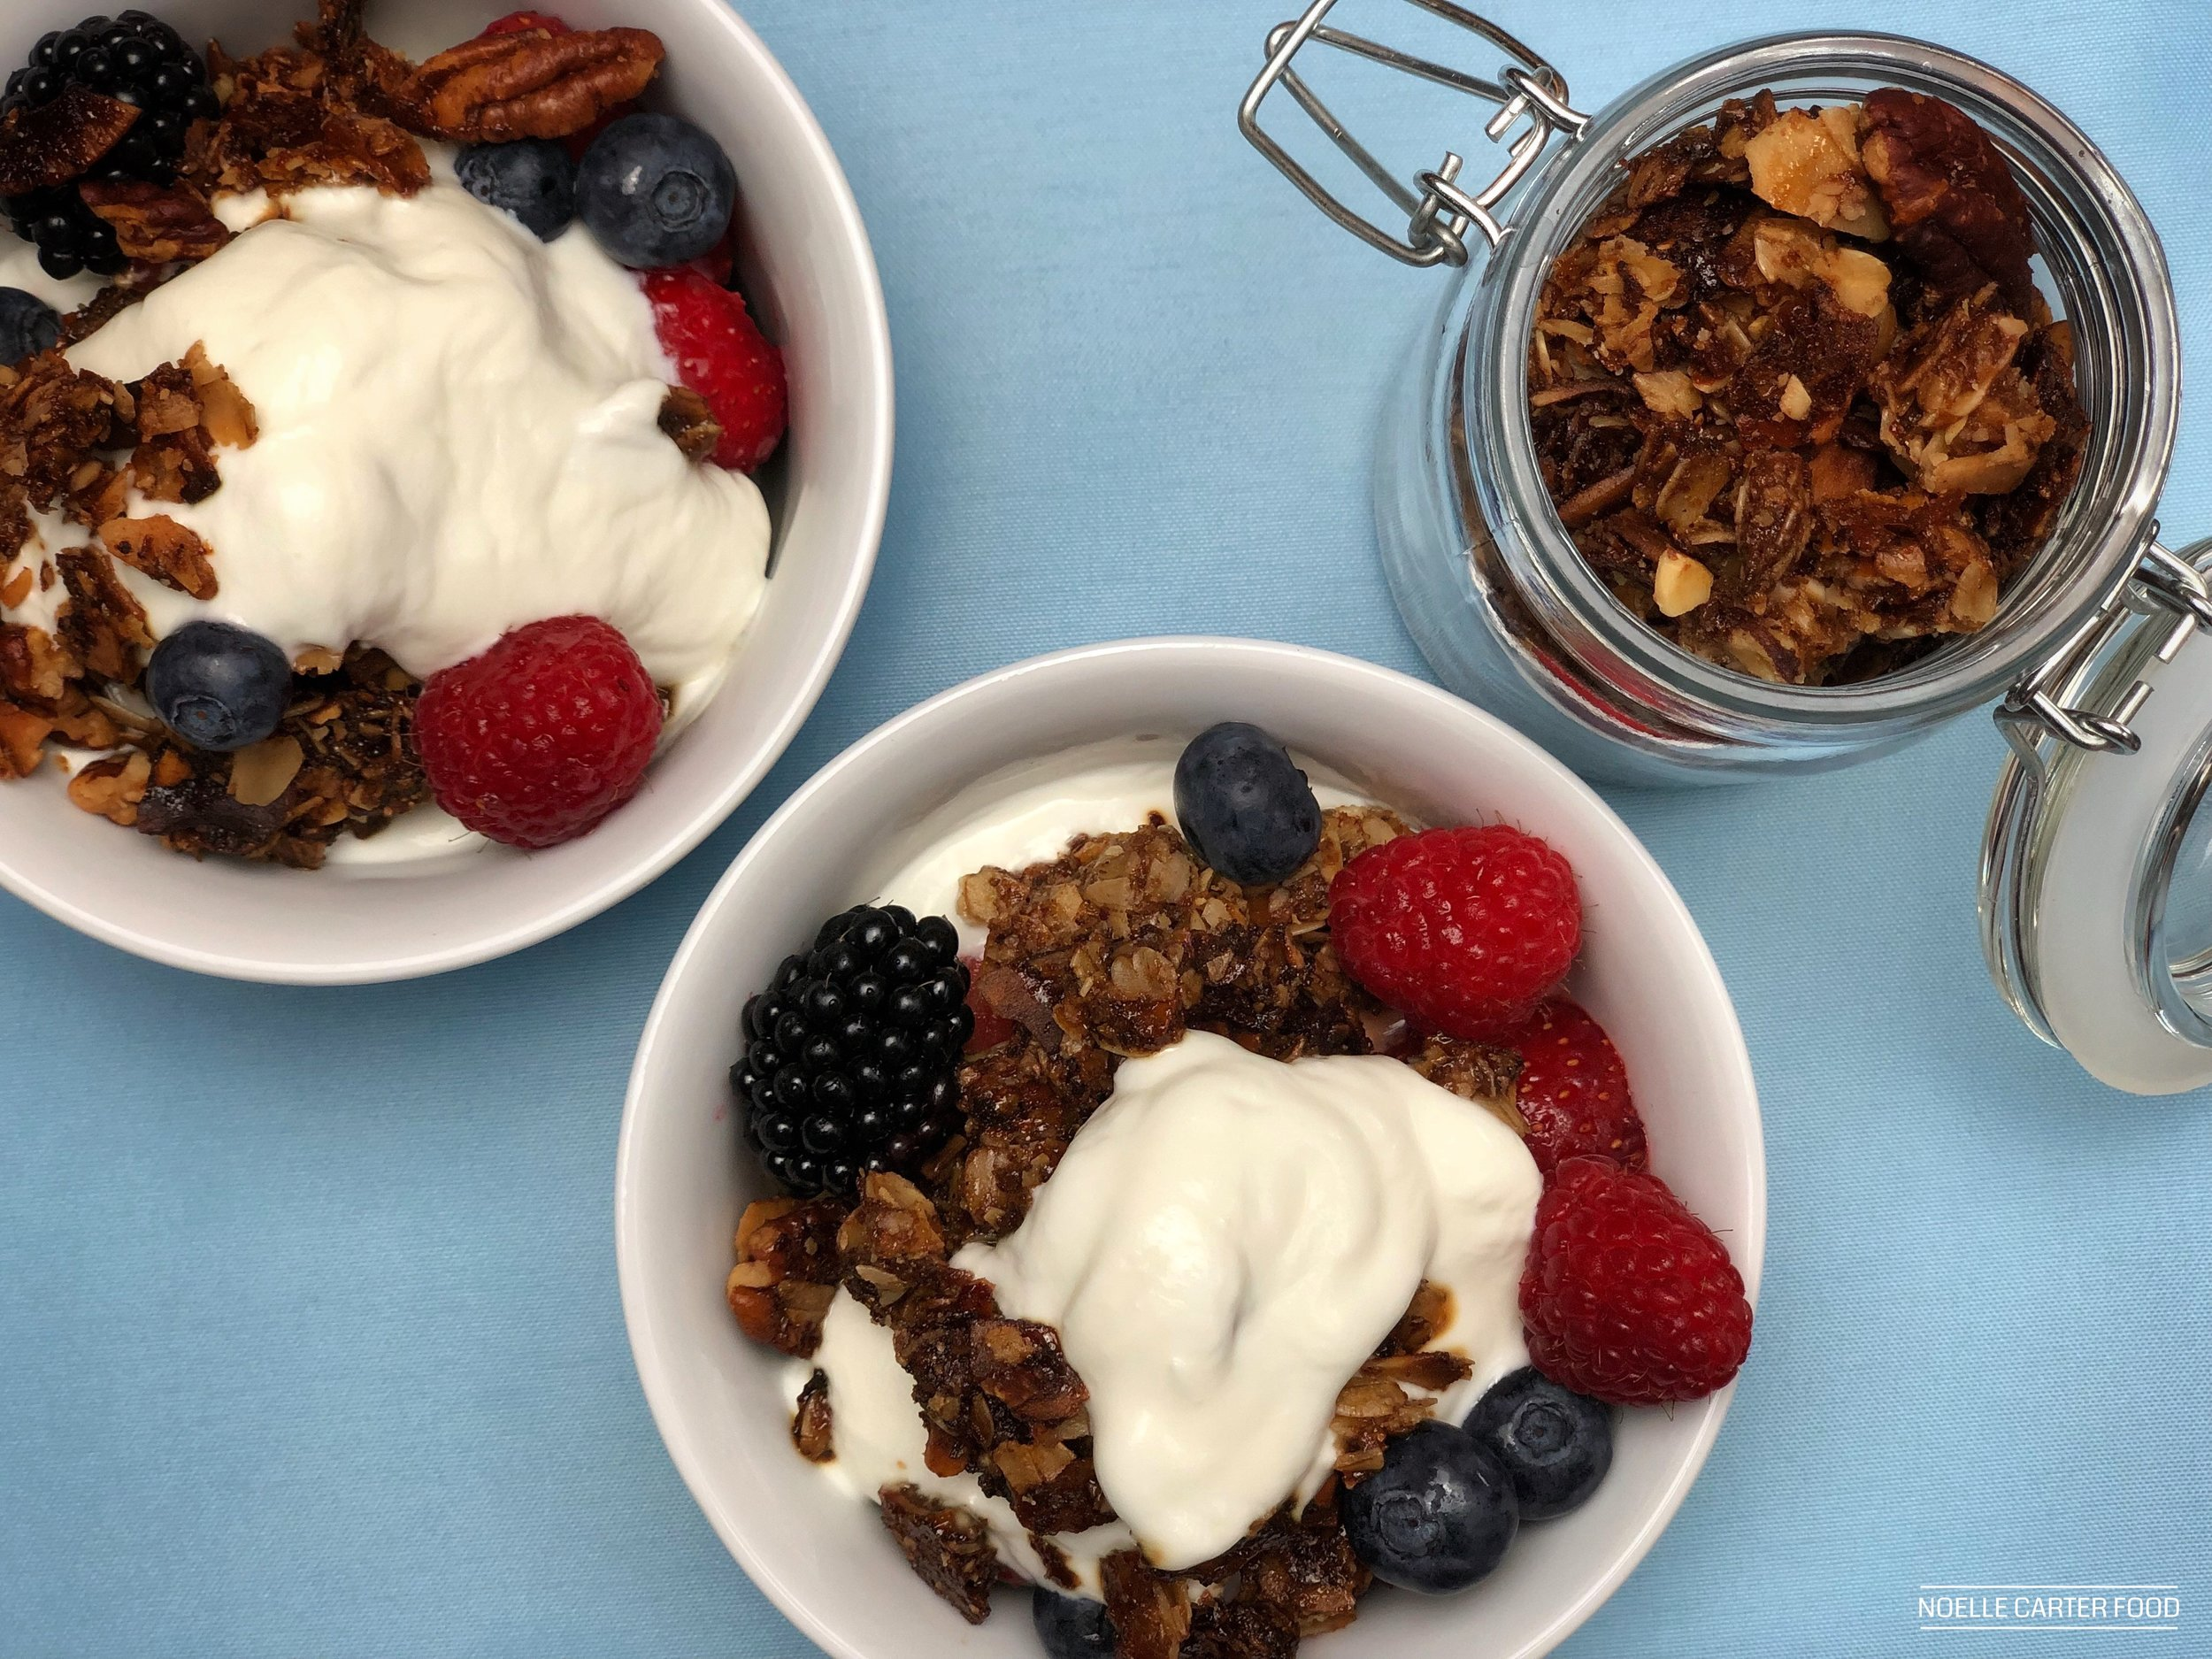 Fruit and yogurt with homemade granola. (Noelle Carter)